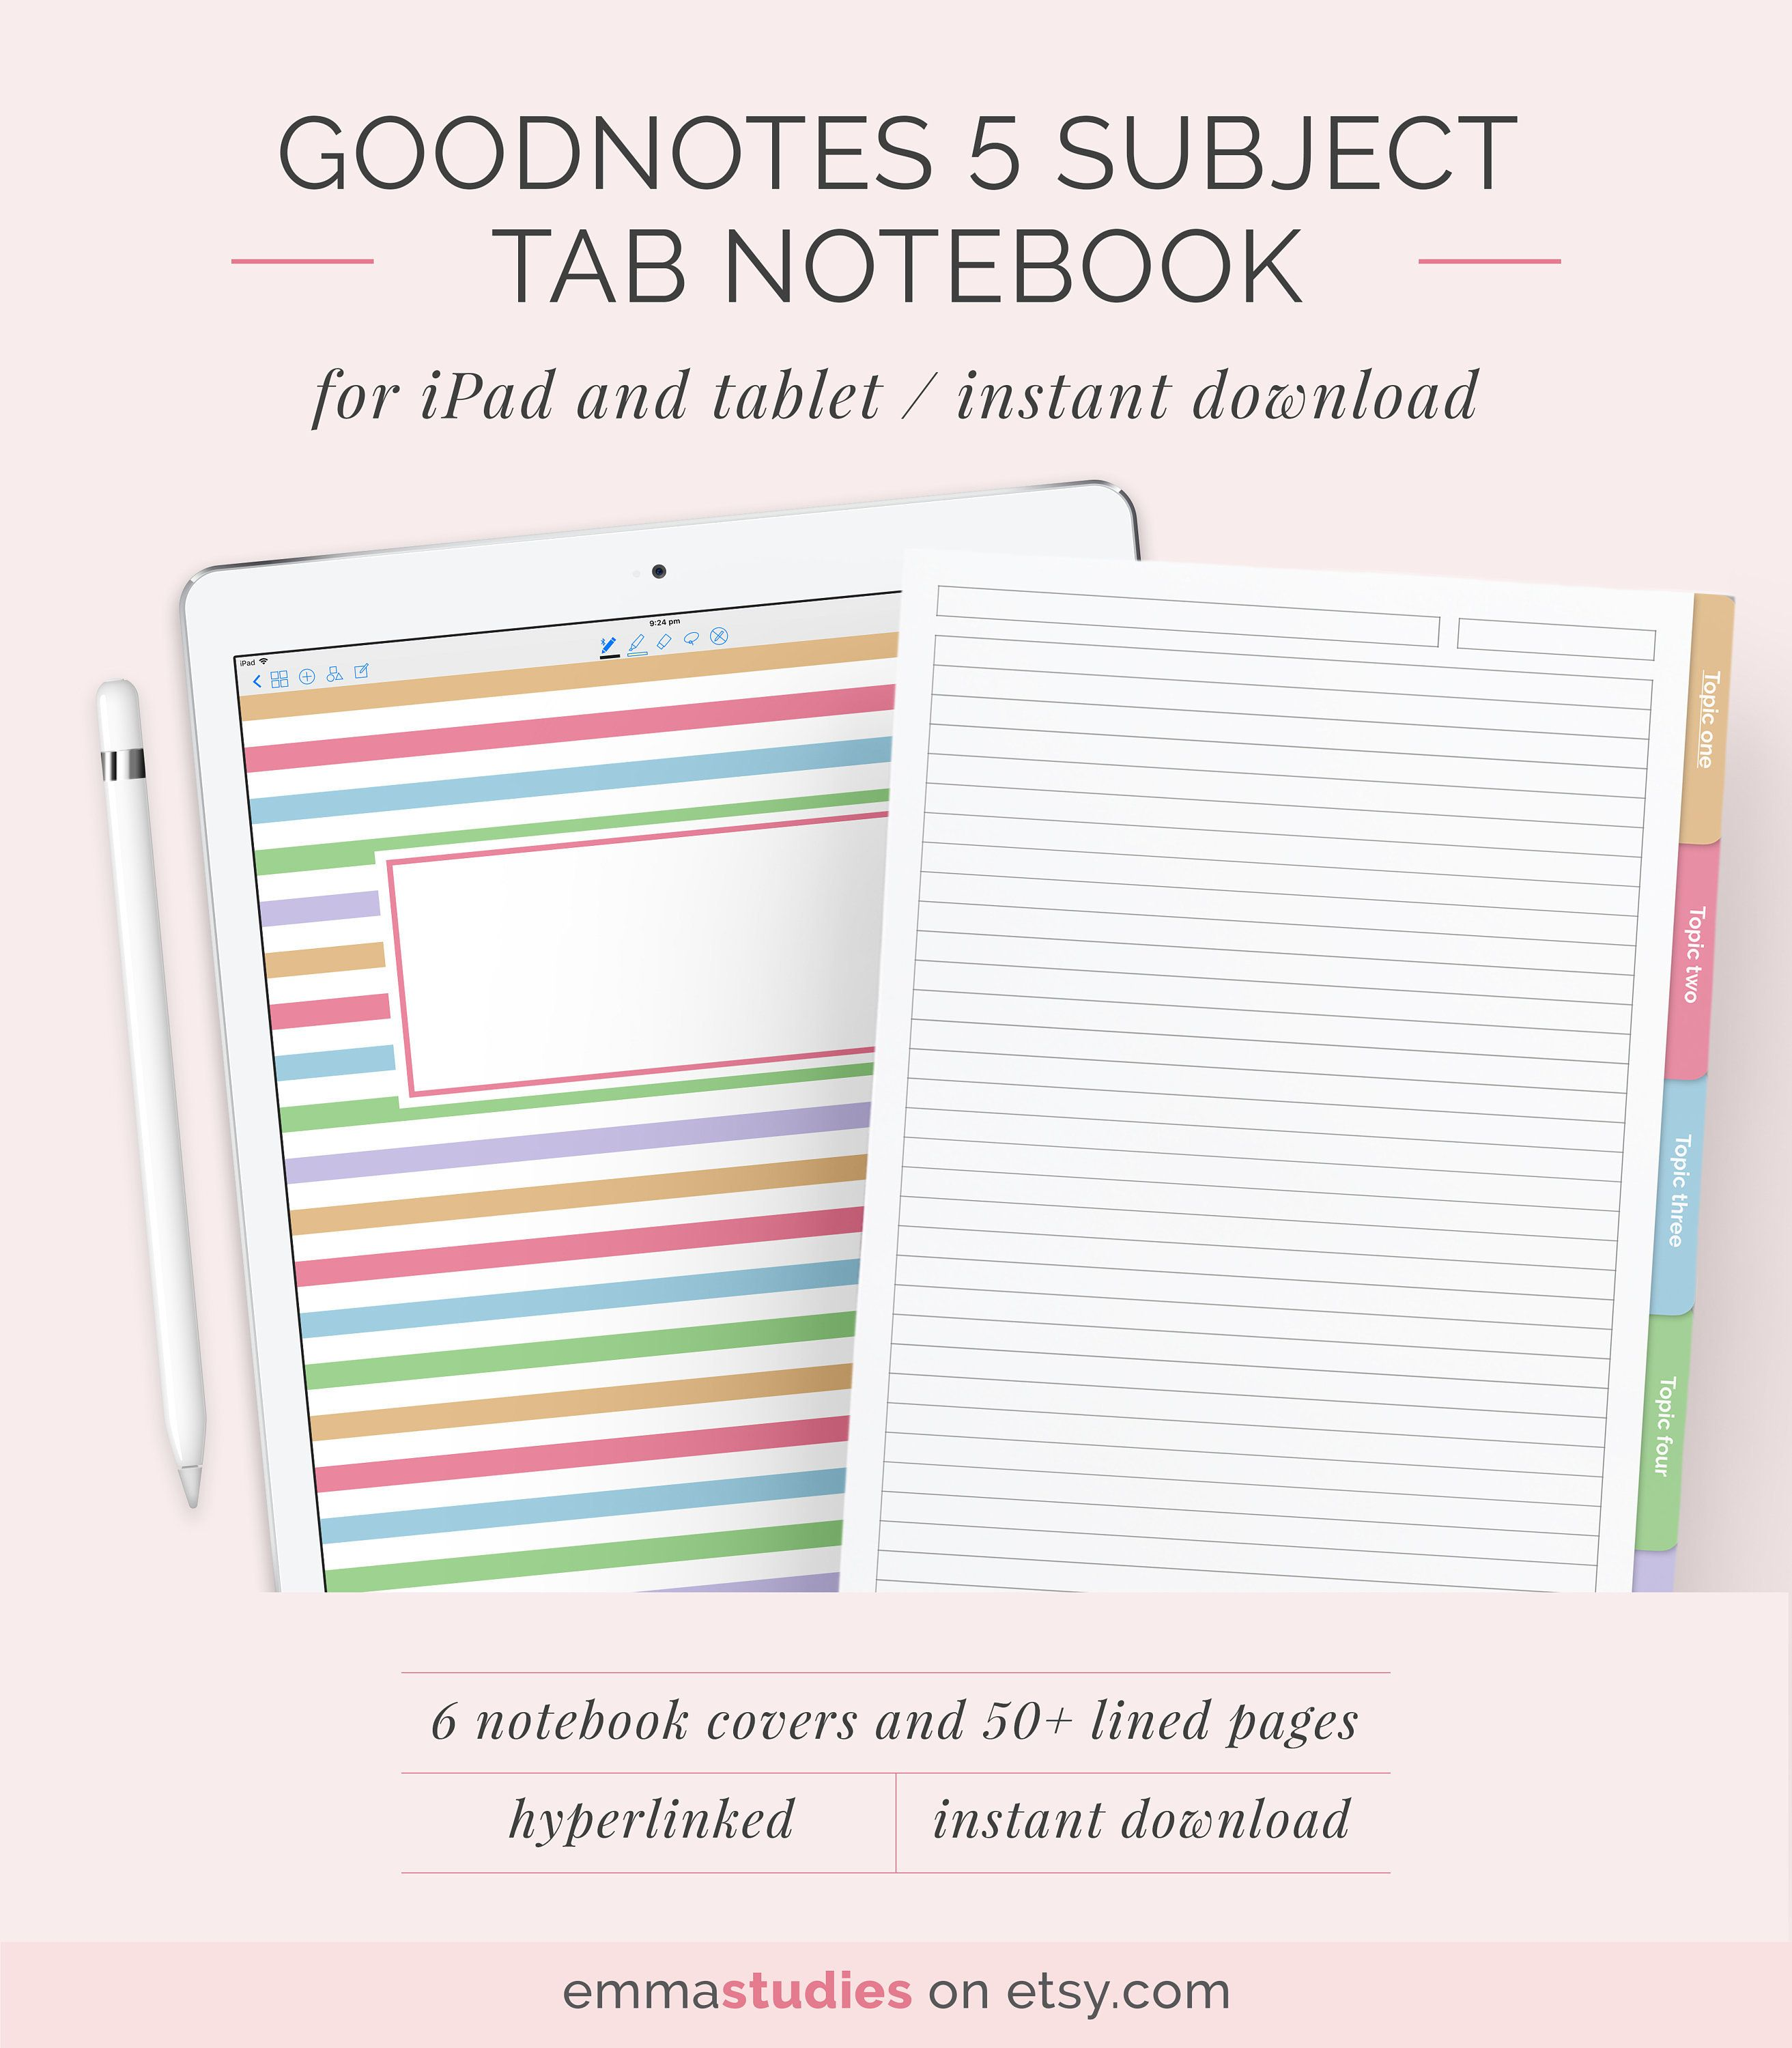 GoodNotes 5 Subject Student Notebook Template | Digital Lined Ruled